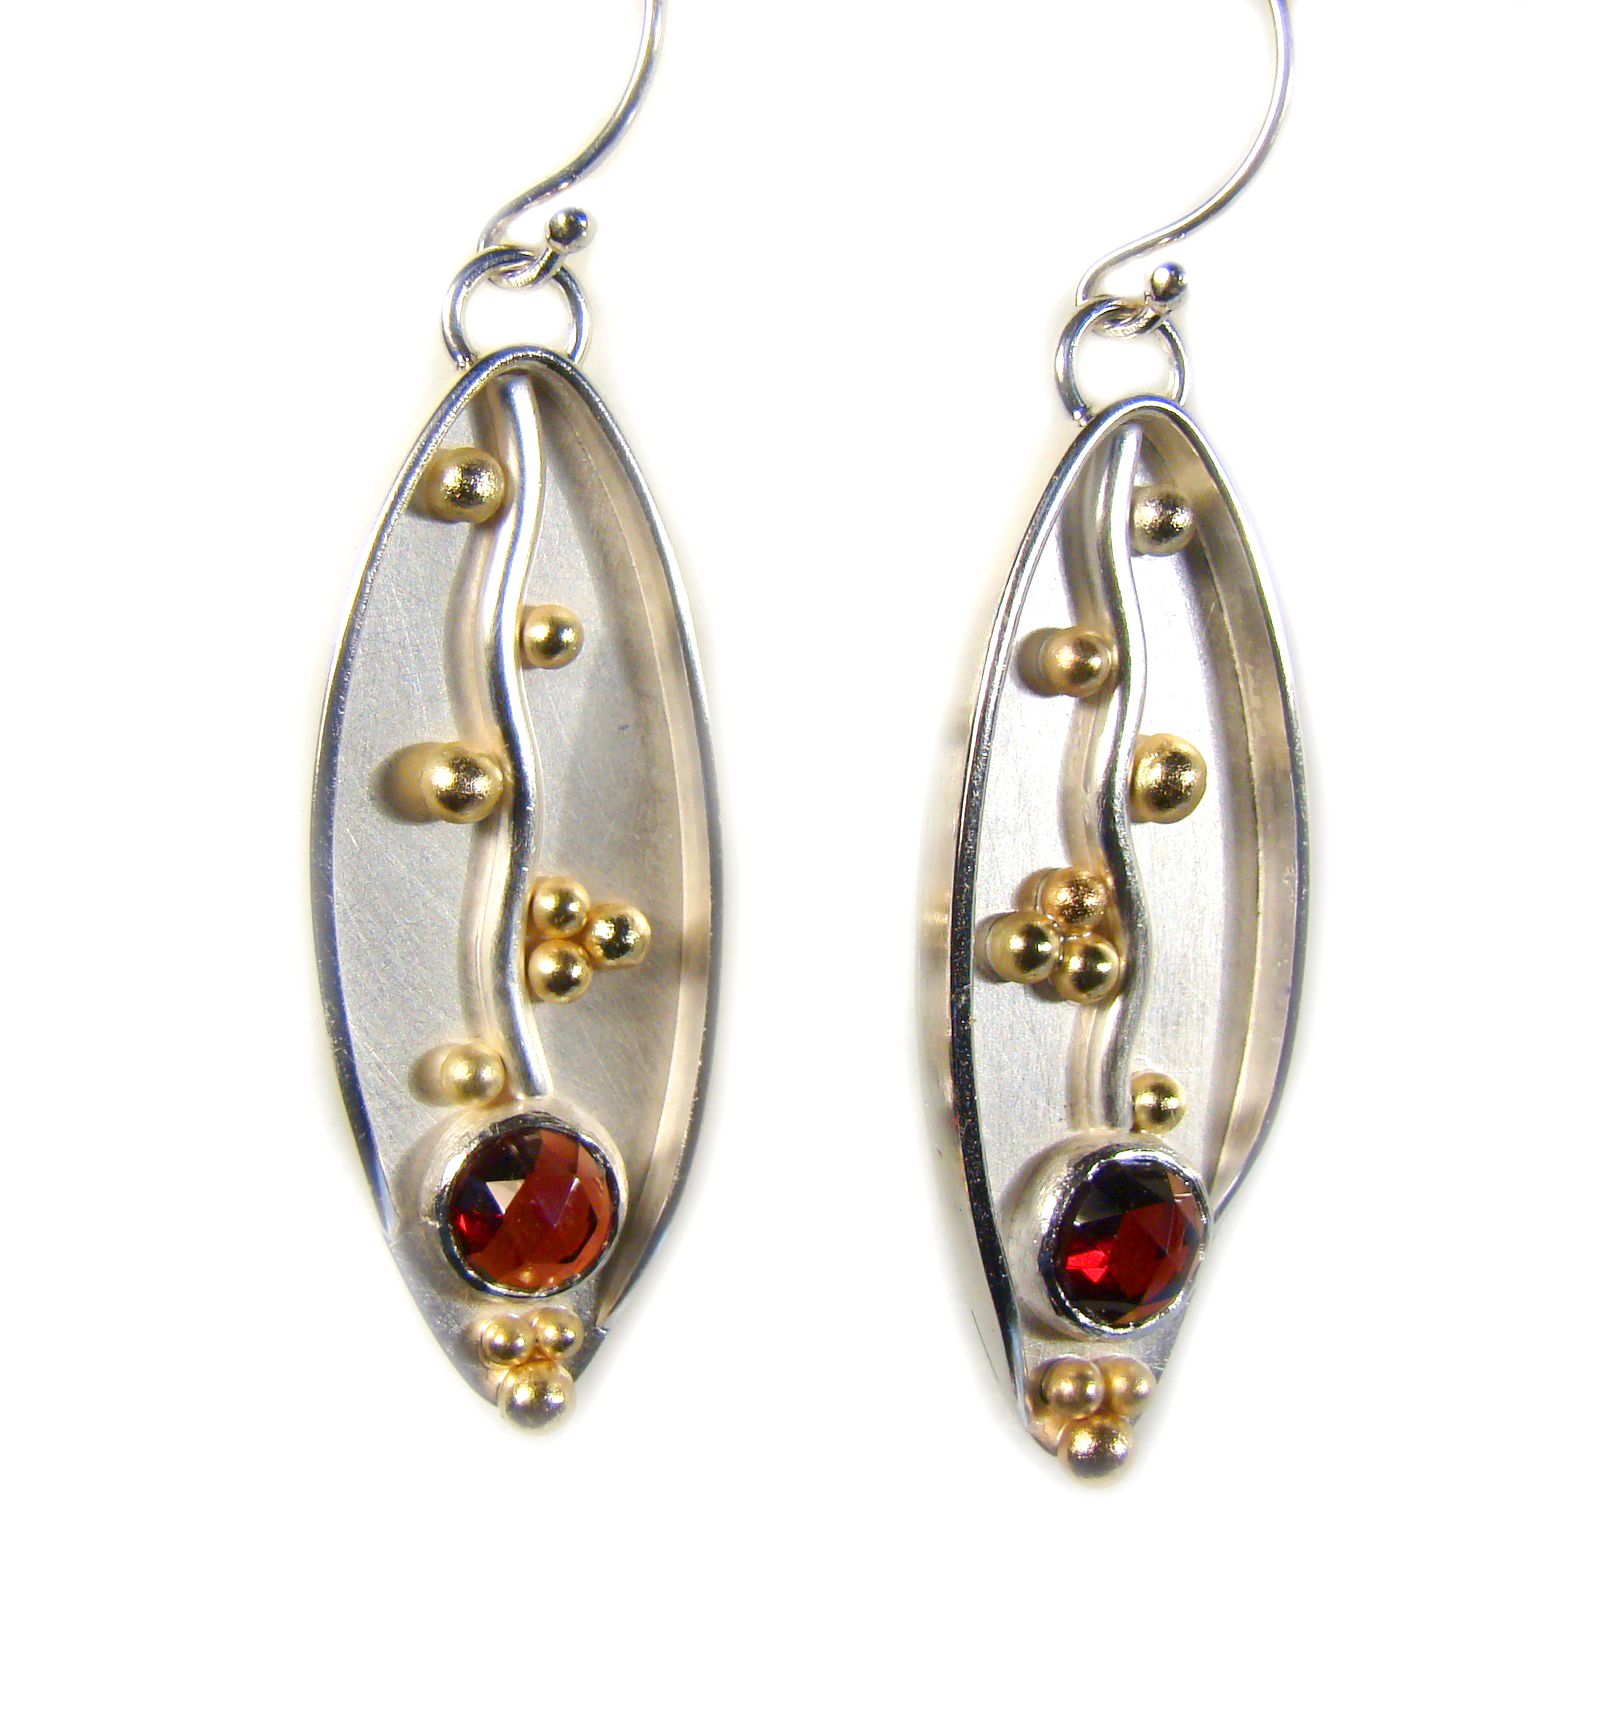 Earrings20.jpg